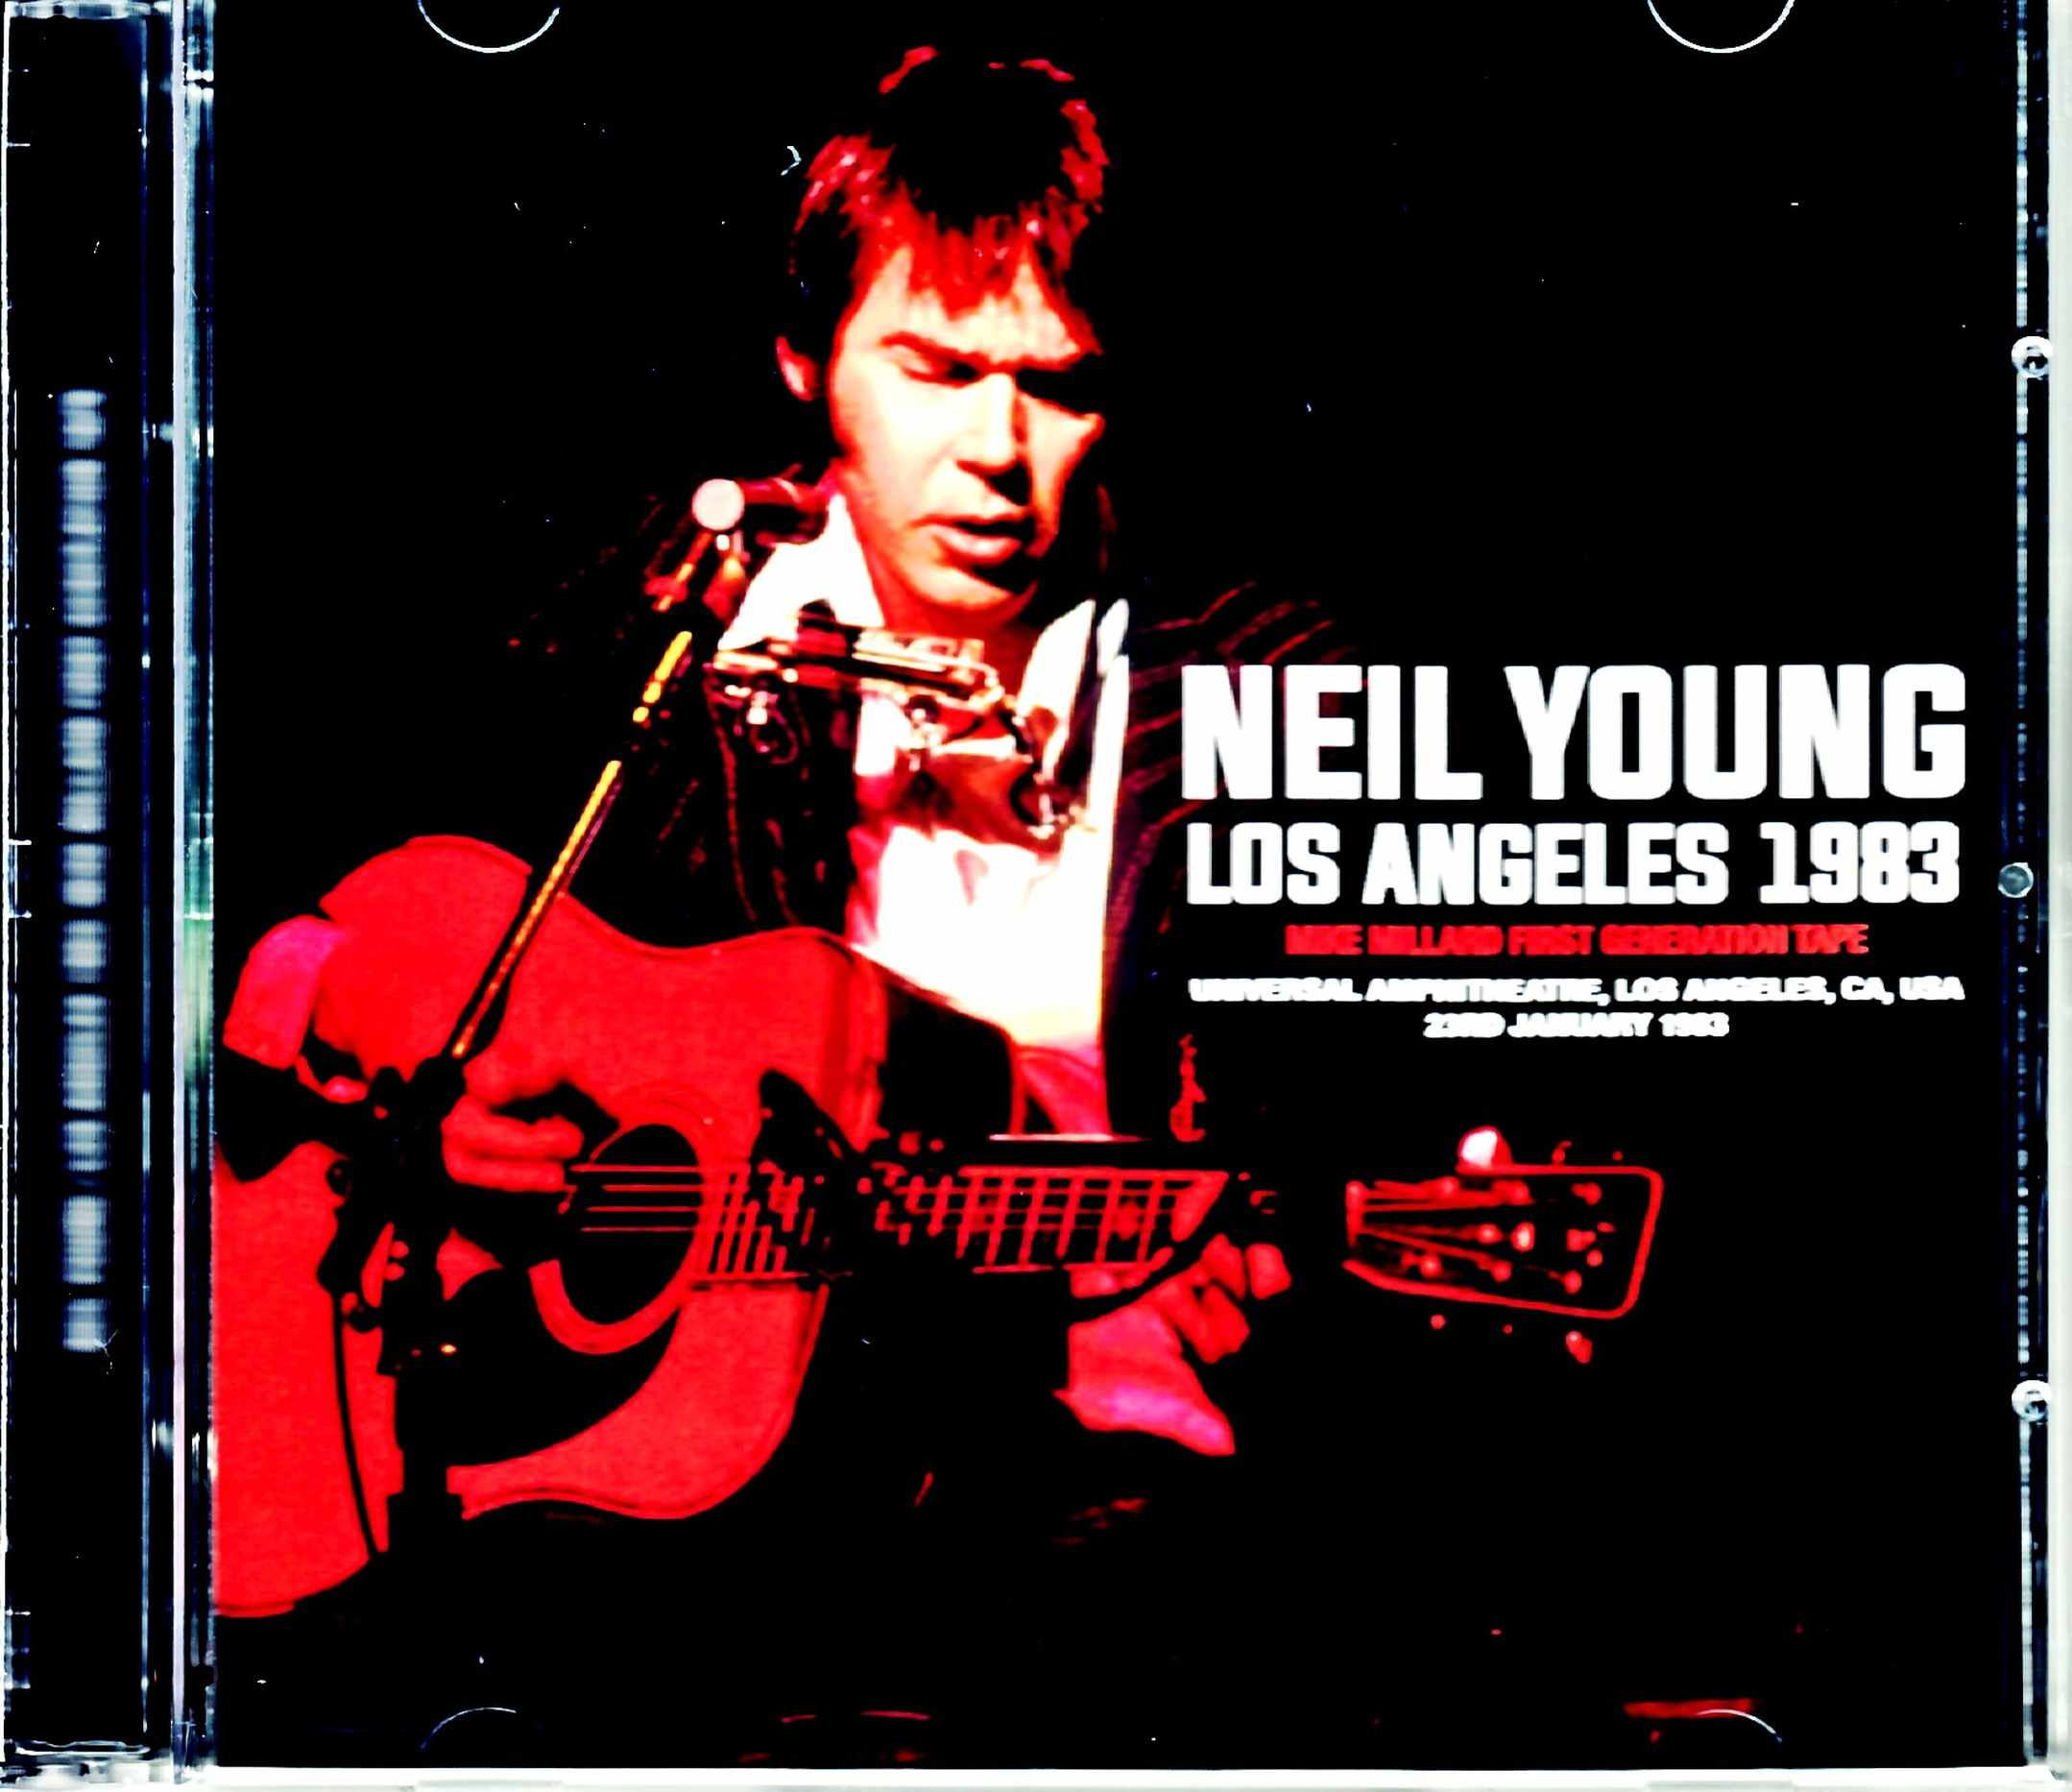 Neil Young ニール・ヤング/CA,USA 1983 Mike Millard Tape Another Version